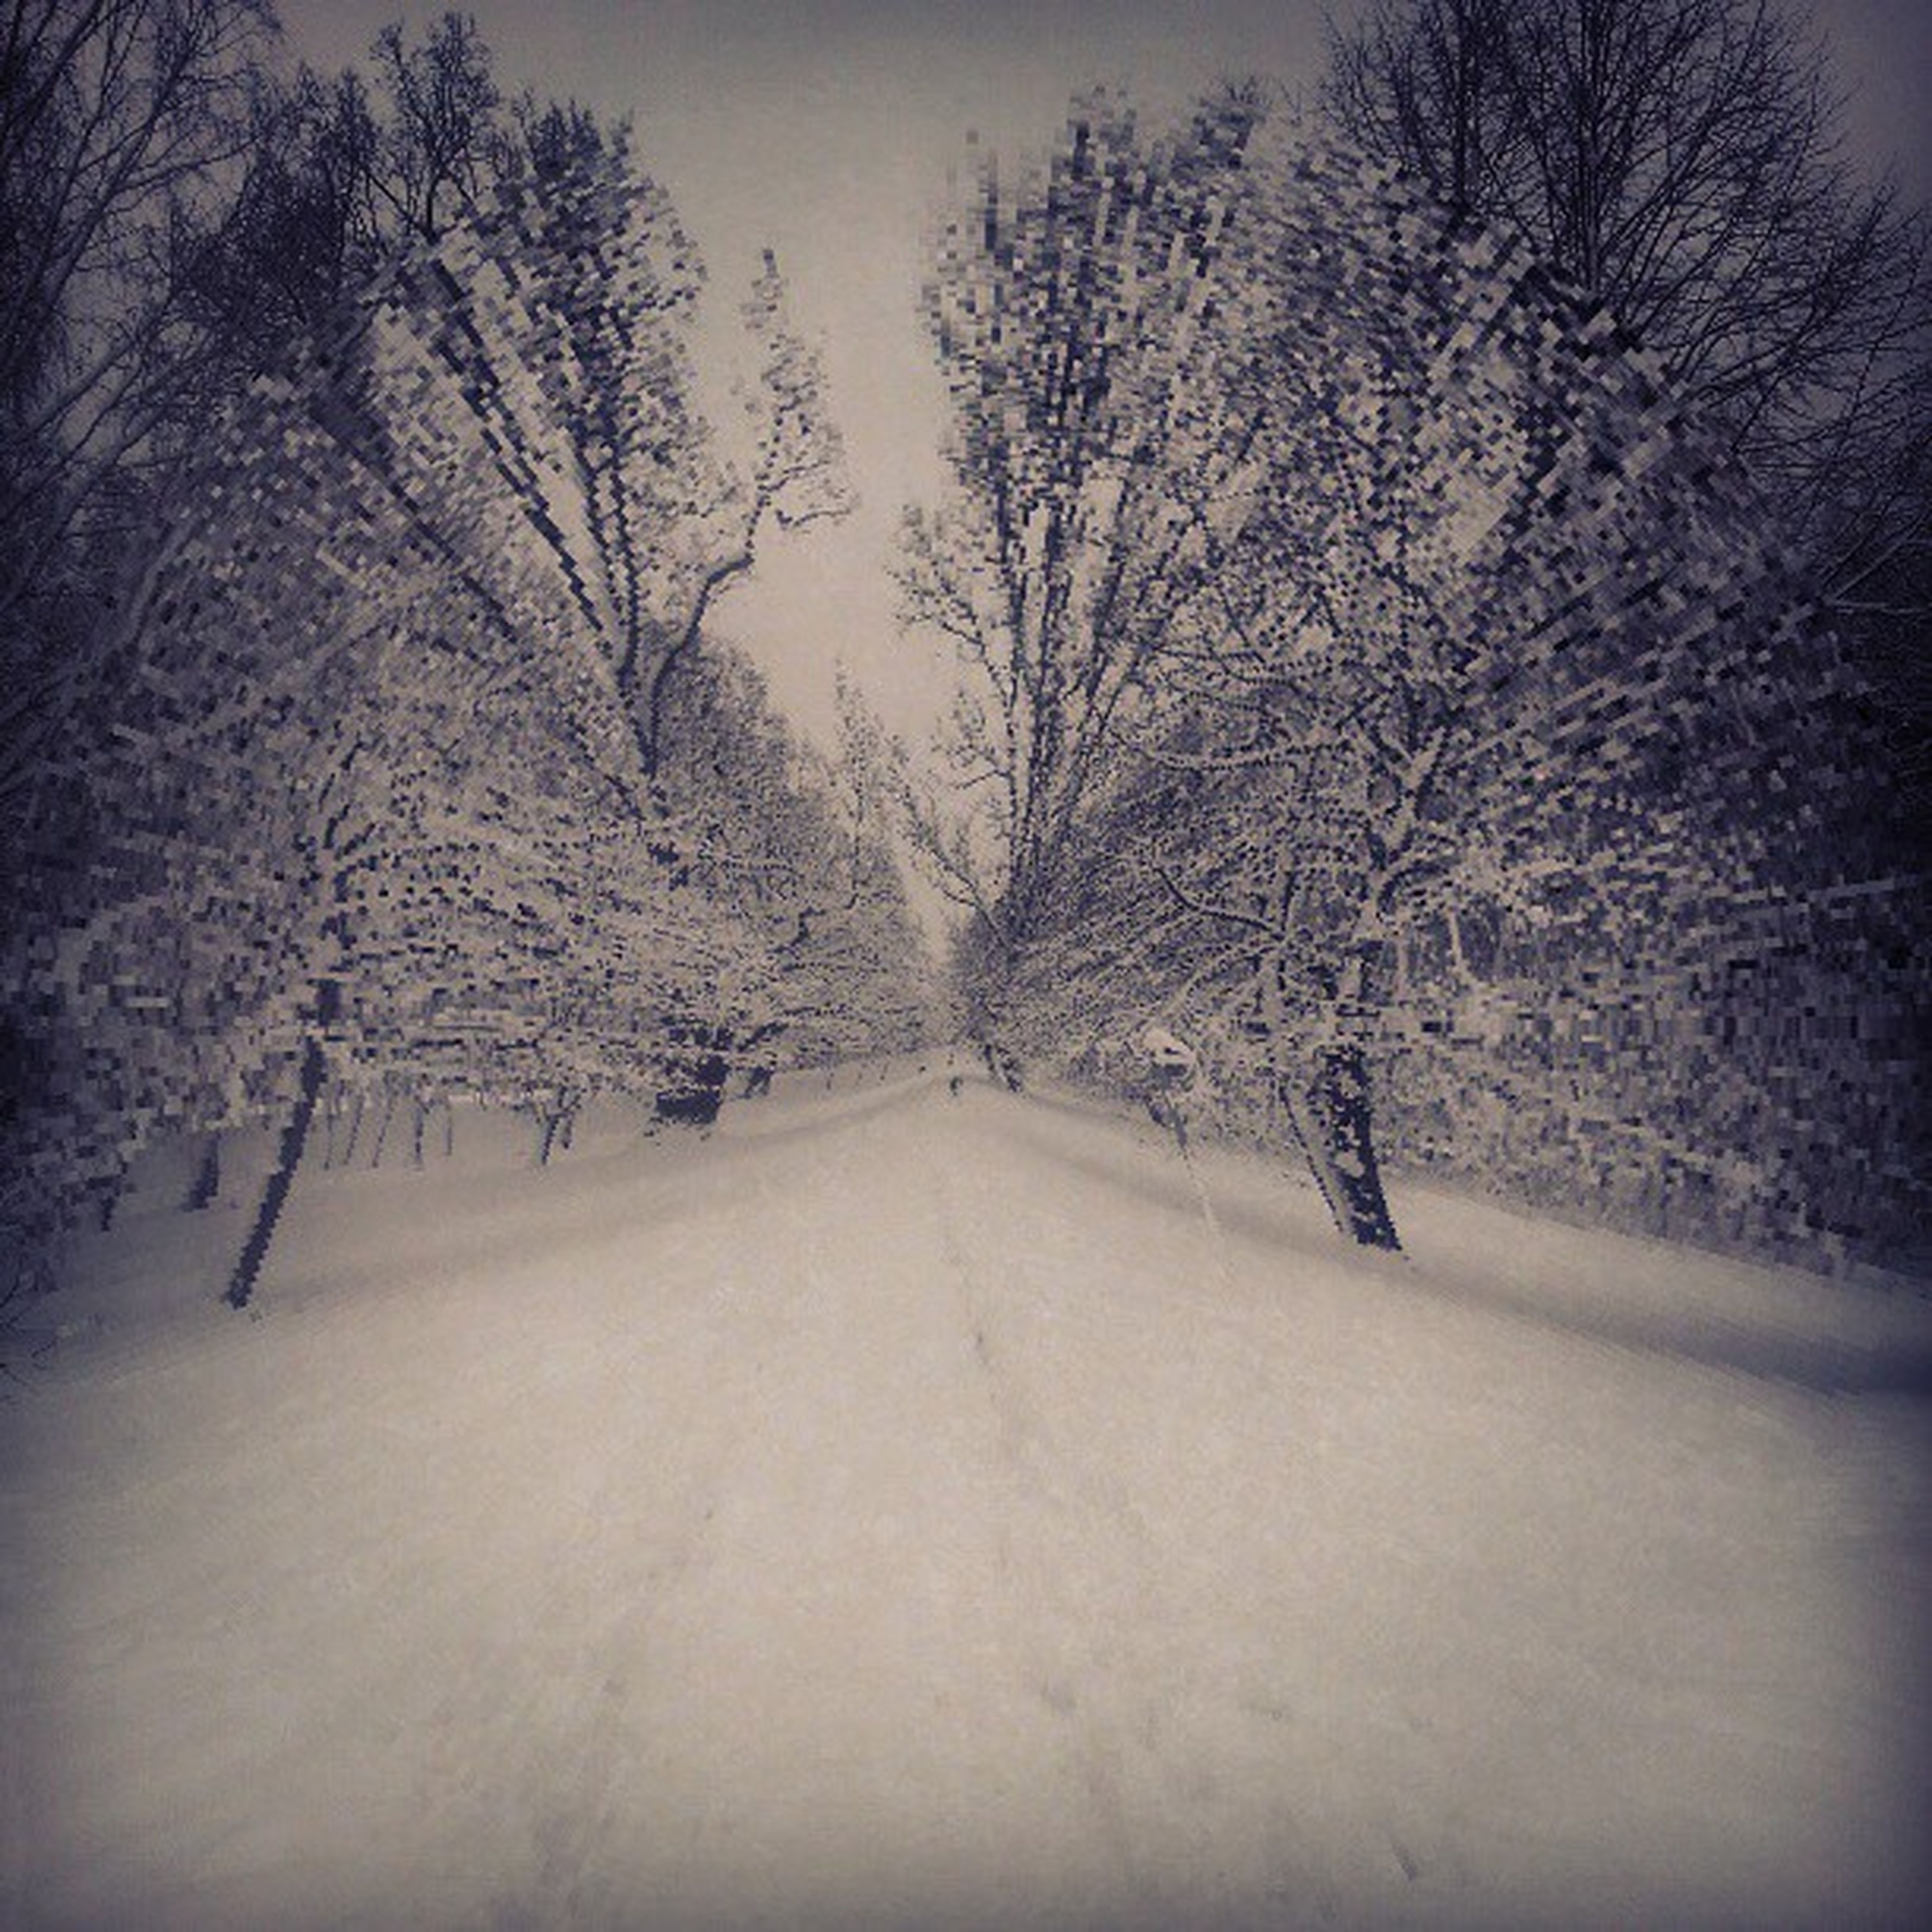 snow, winter, bare tree, tree, cold temperature, the way forward, season, weather, tranquility, tranquil scene, branch, nature, covering, beauty in nature, landscape, scenics, diminishing perspective, road, covered, non-urban scene